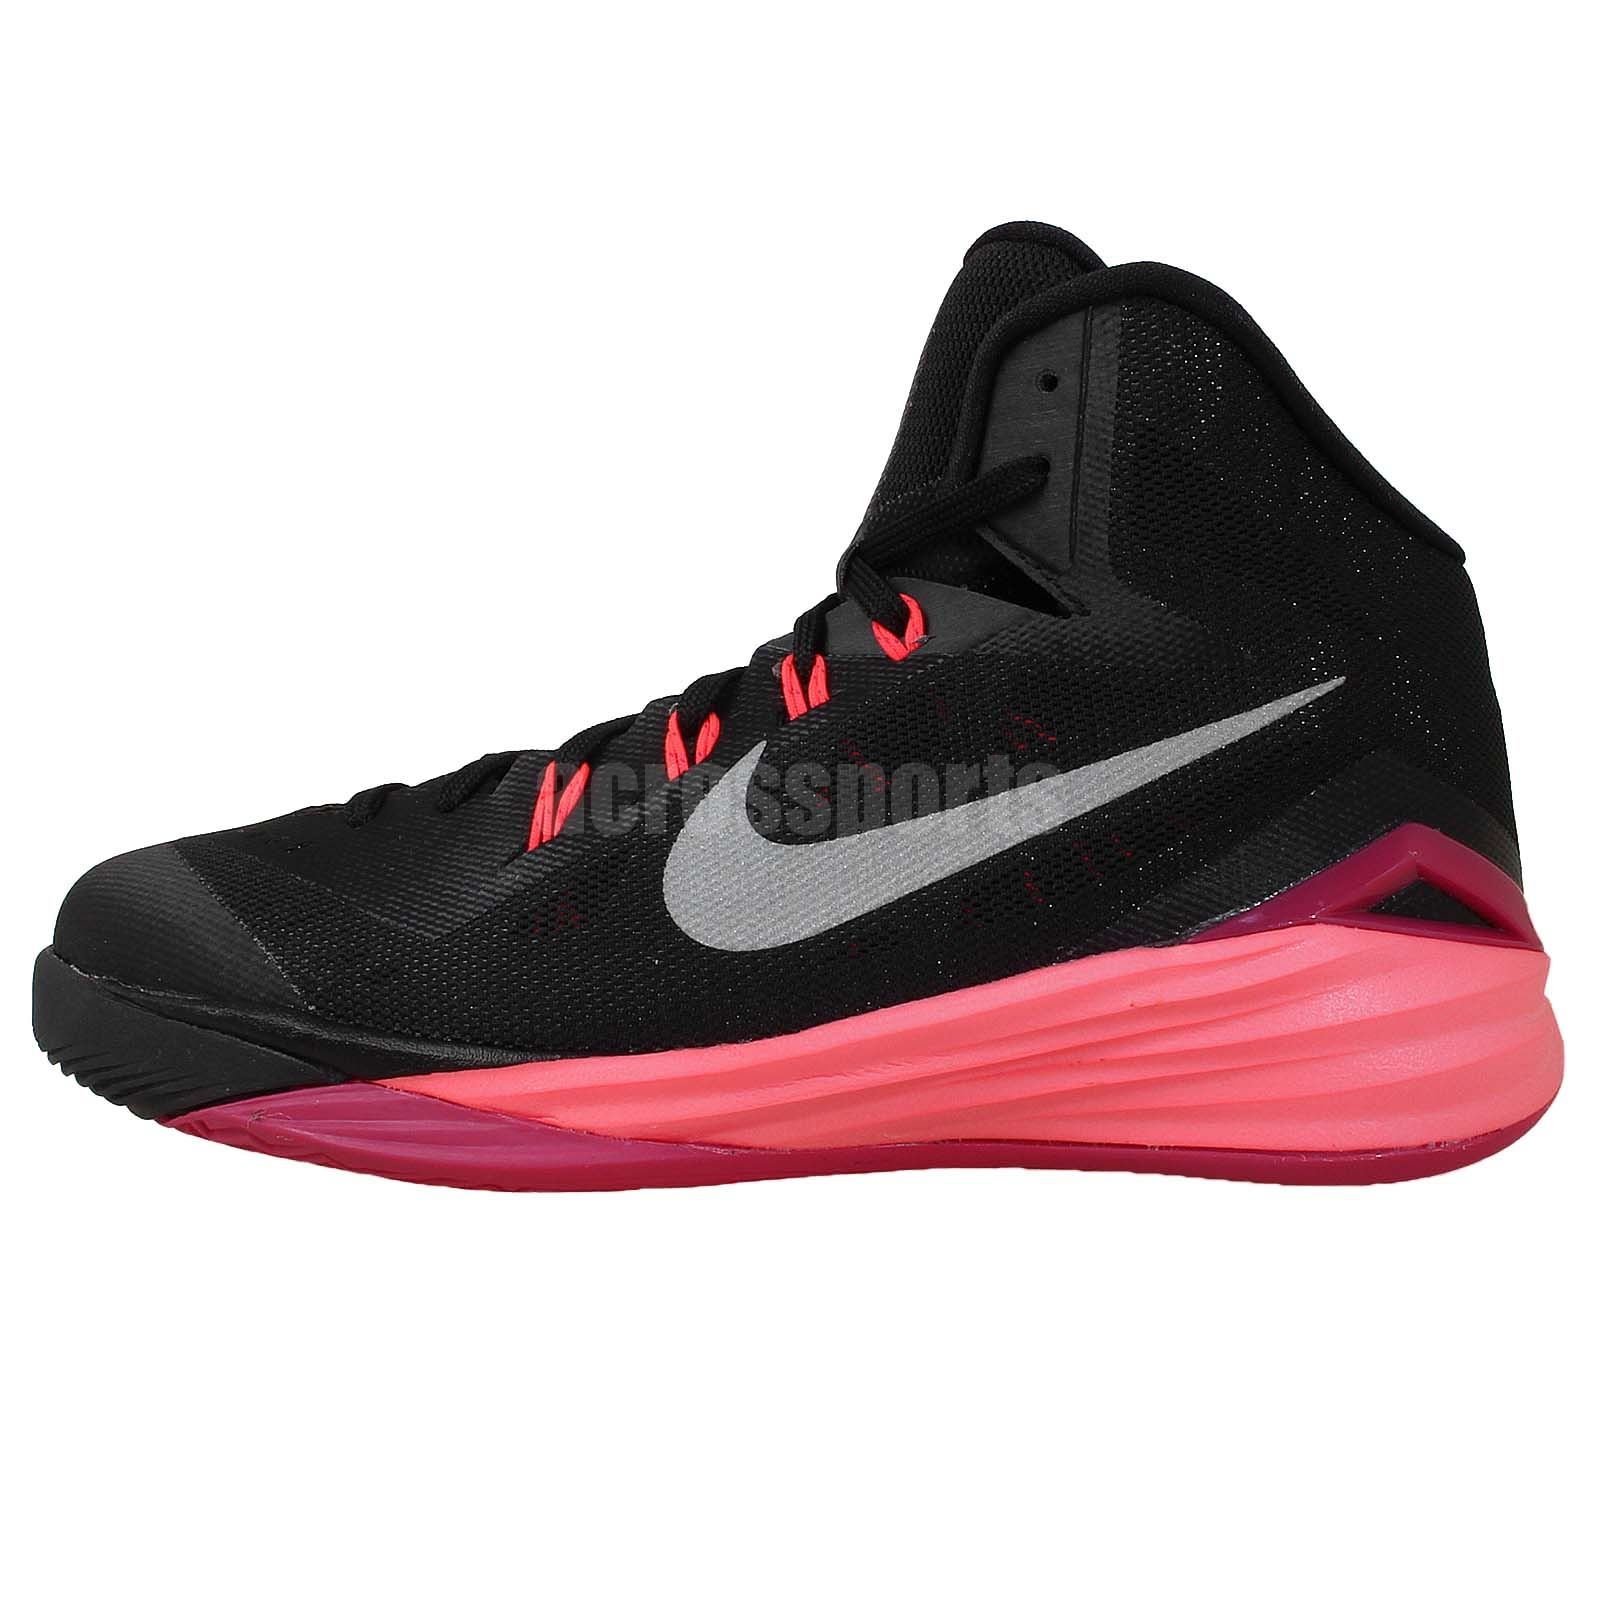 Basketball shoes for kids girls